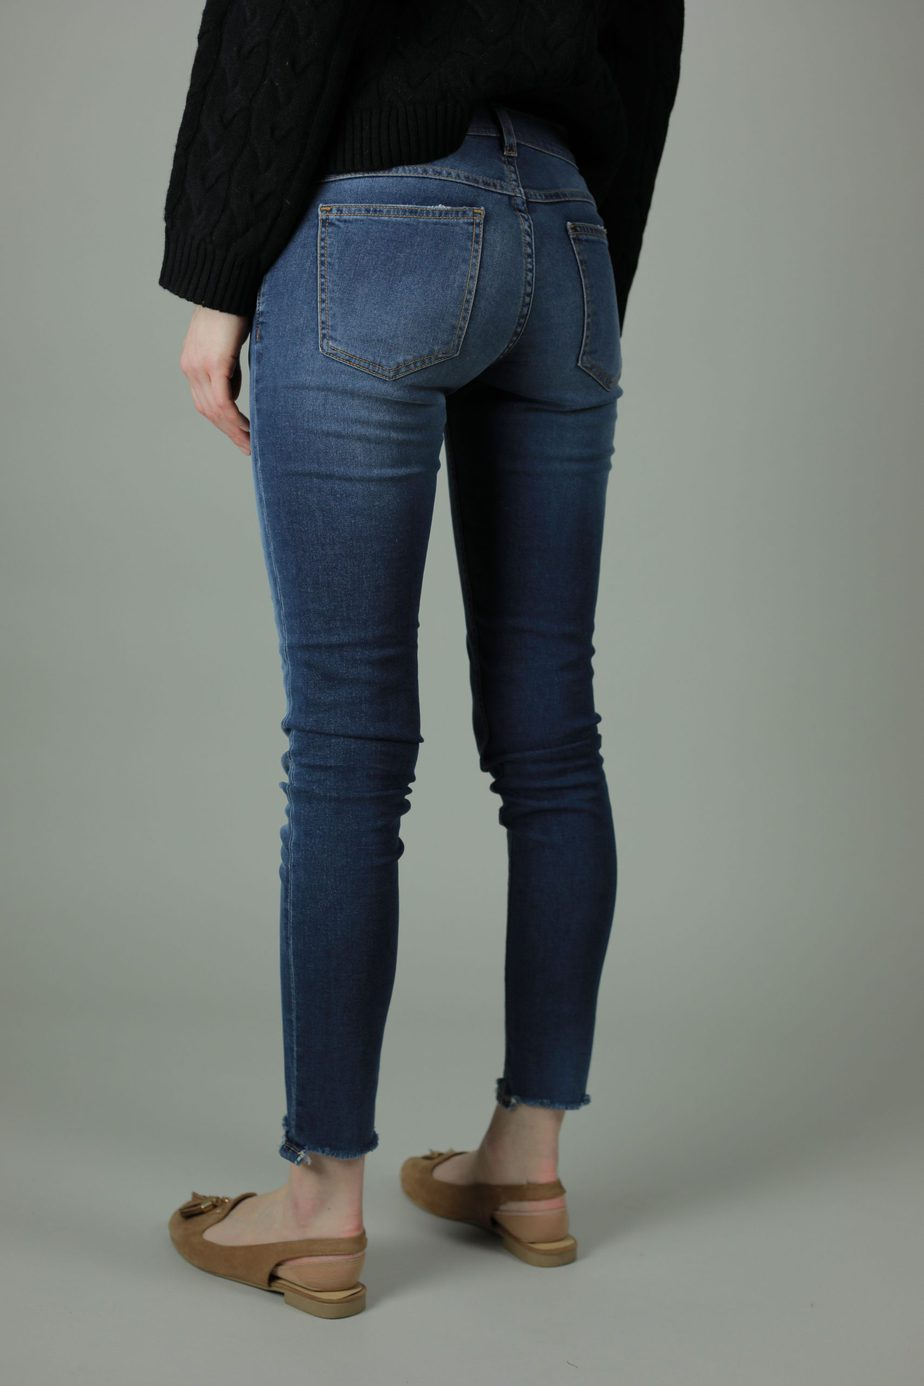 With 98% cotton and 2% elastane the Meghan Lisbon Jeans are comfortable and durable for year round wear. These jeans are skinny leg, superstretchy denim with frayed effect to rock any look. Side view.